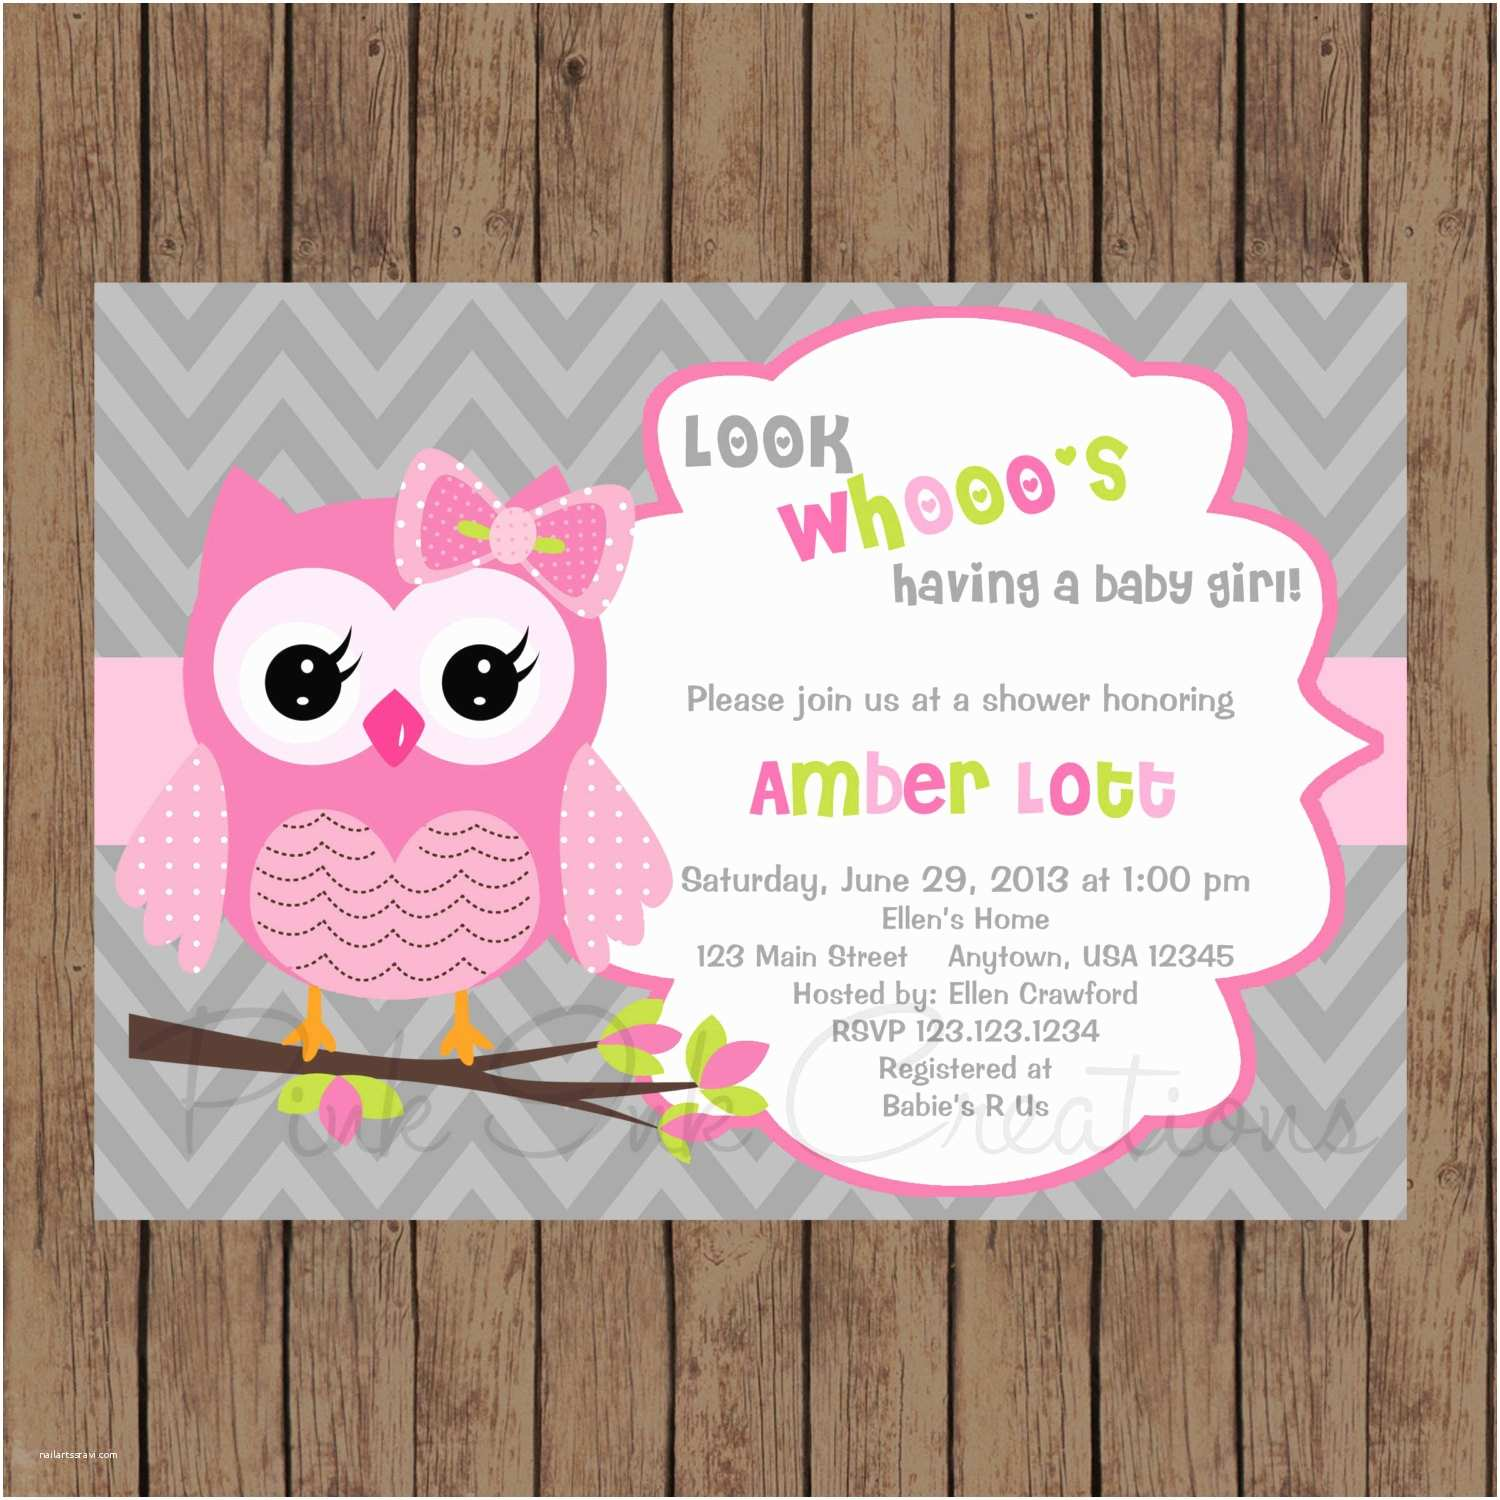 Owl Invitations for Baby Shower Owl Birthday Invitation Pink Gray Owl Baby Shower Invitation